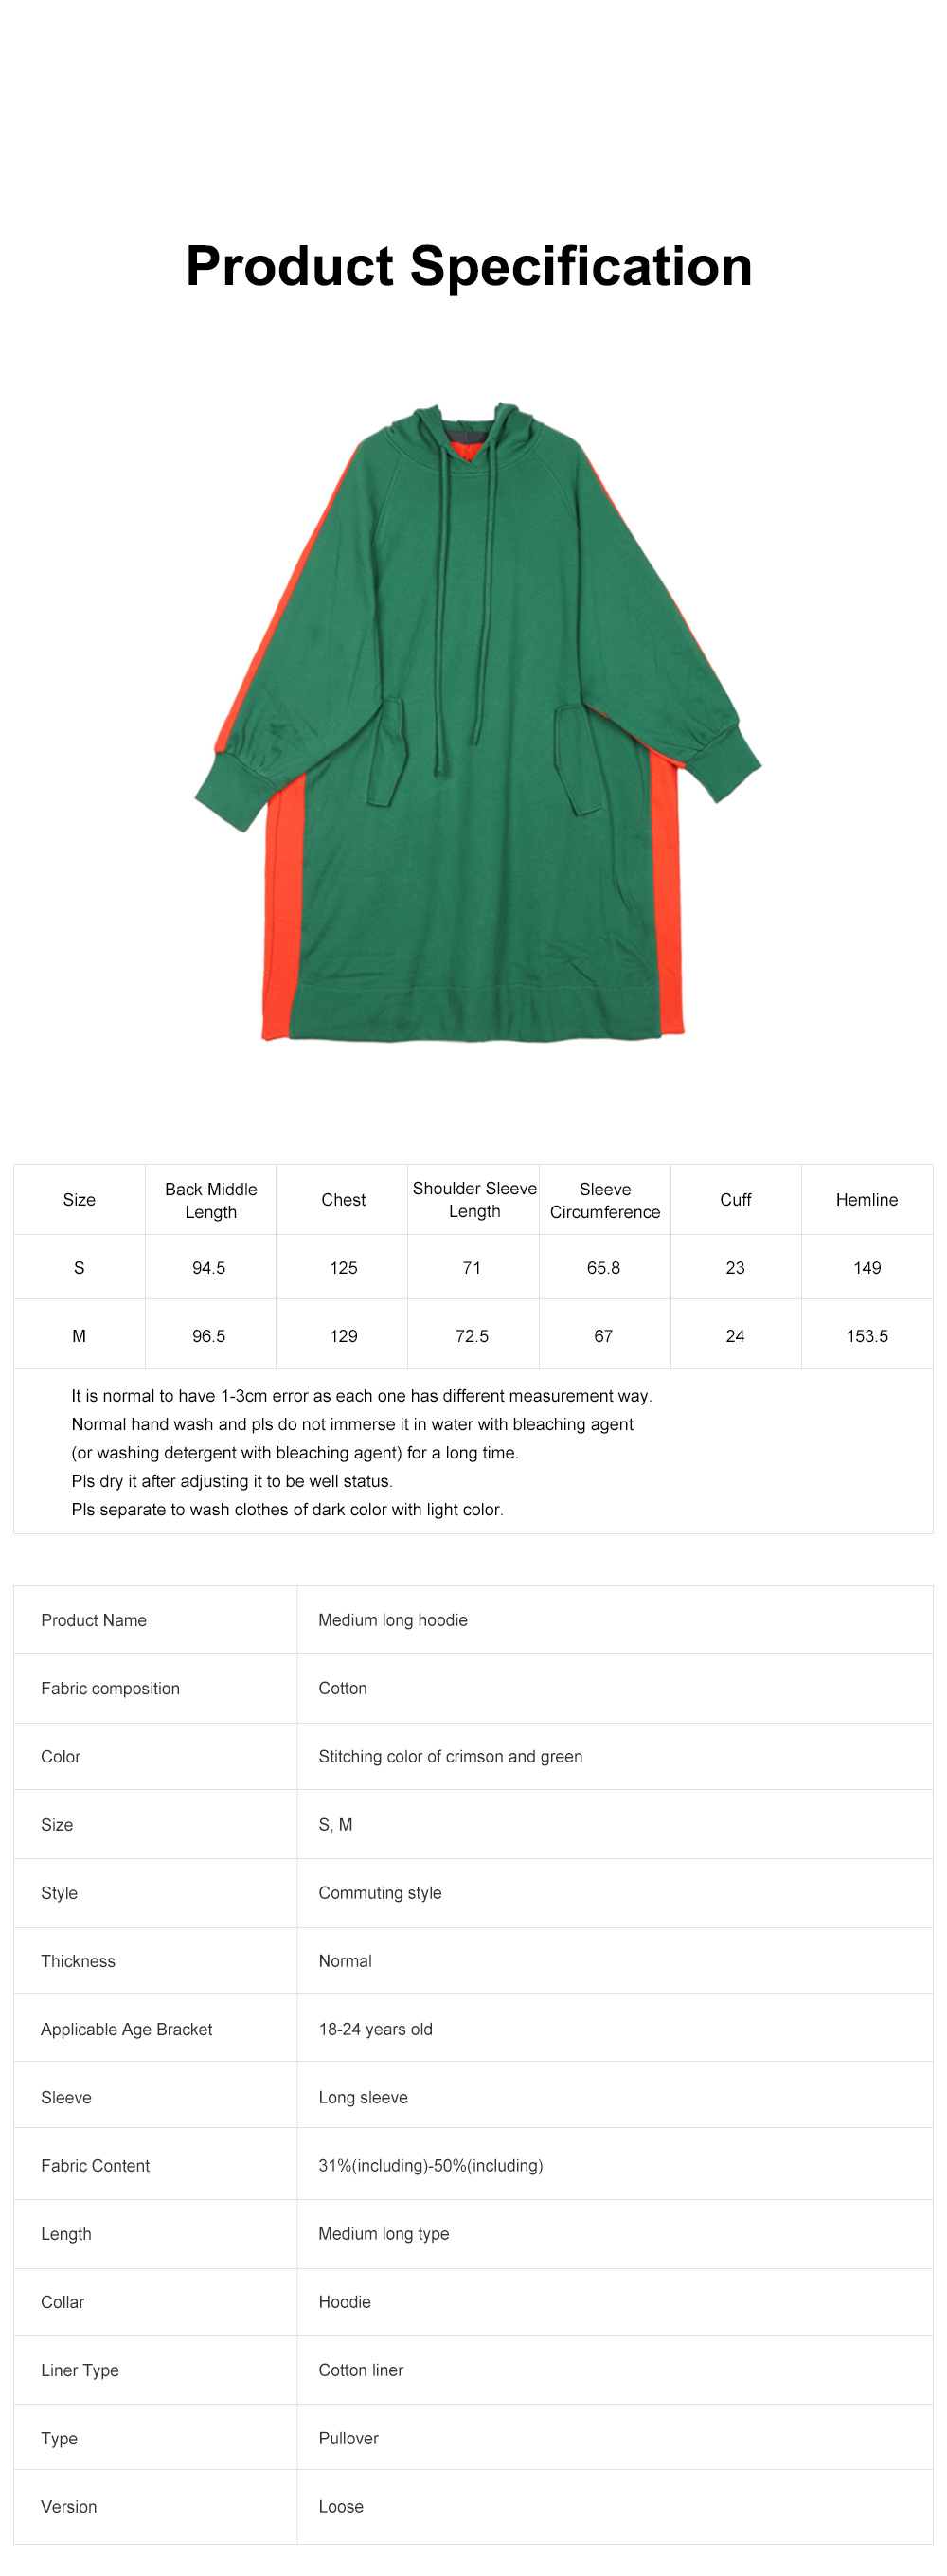 Stitching Color Hoodie Loose Style Hoodie for Women Fashionable Cotton Overcoat Spring Autumn 2019 6